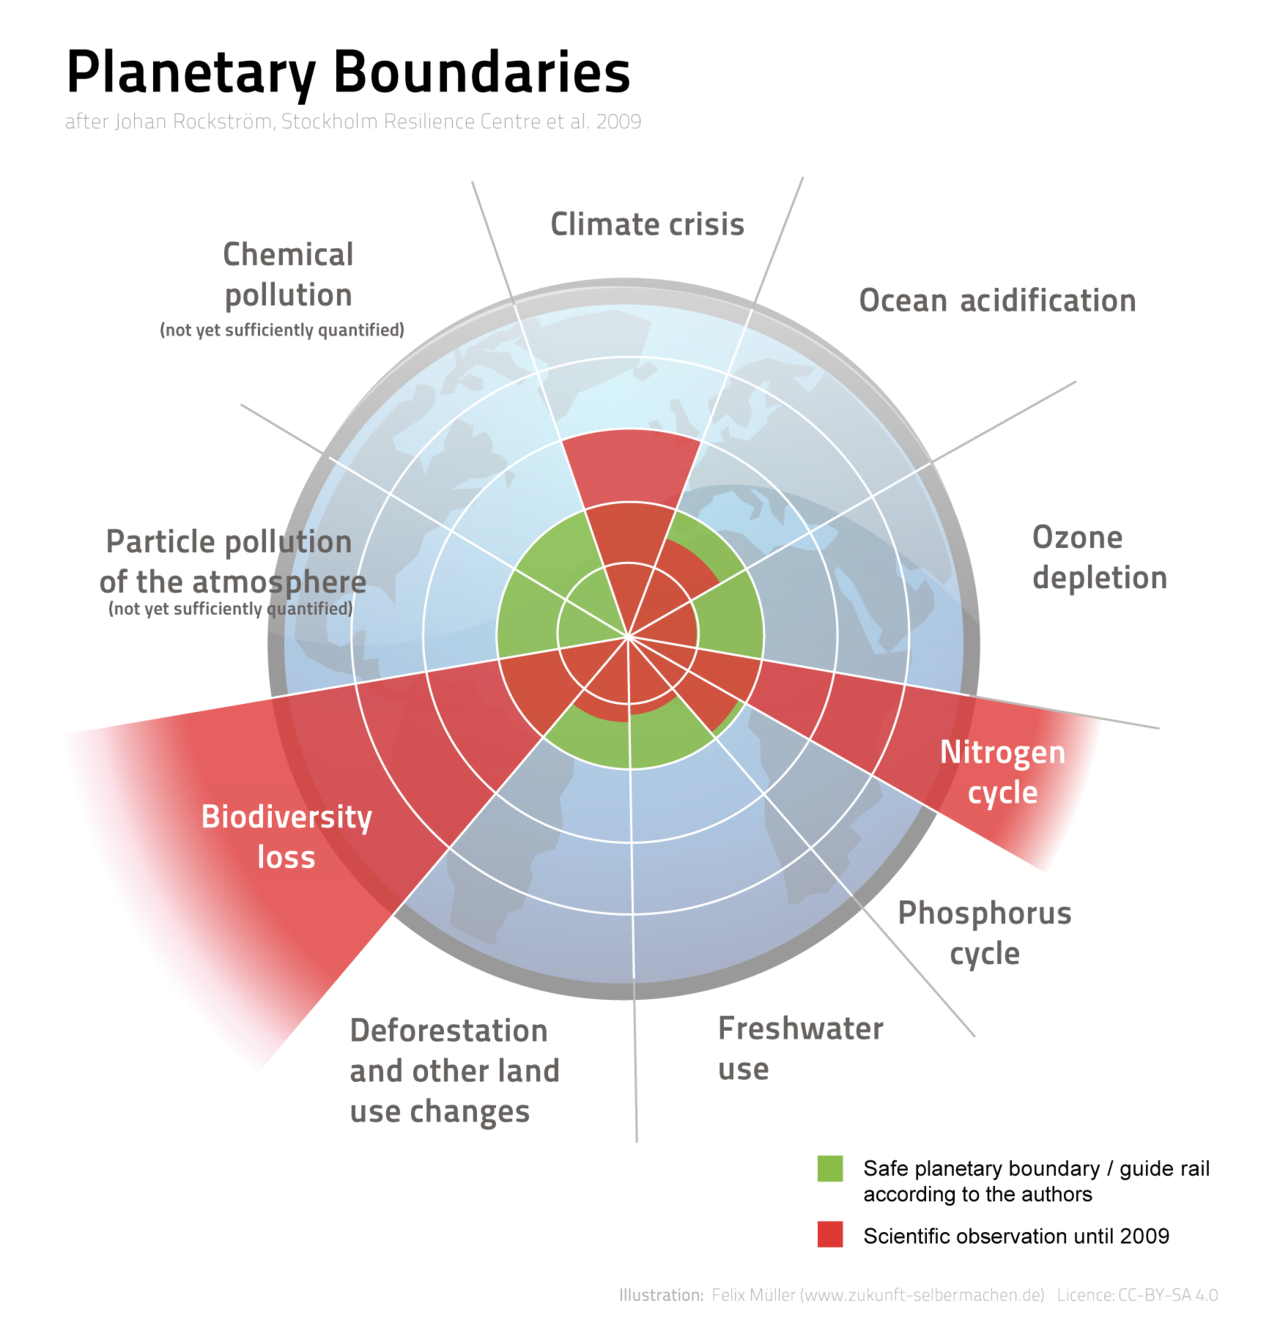 1280px-Planetary_Boundaries.png